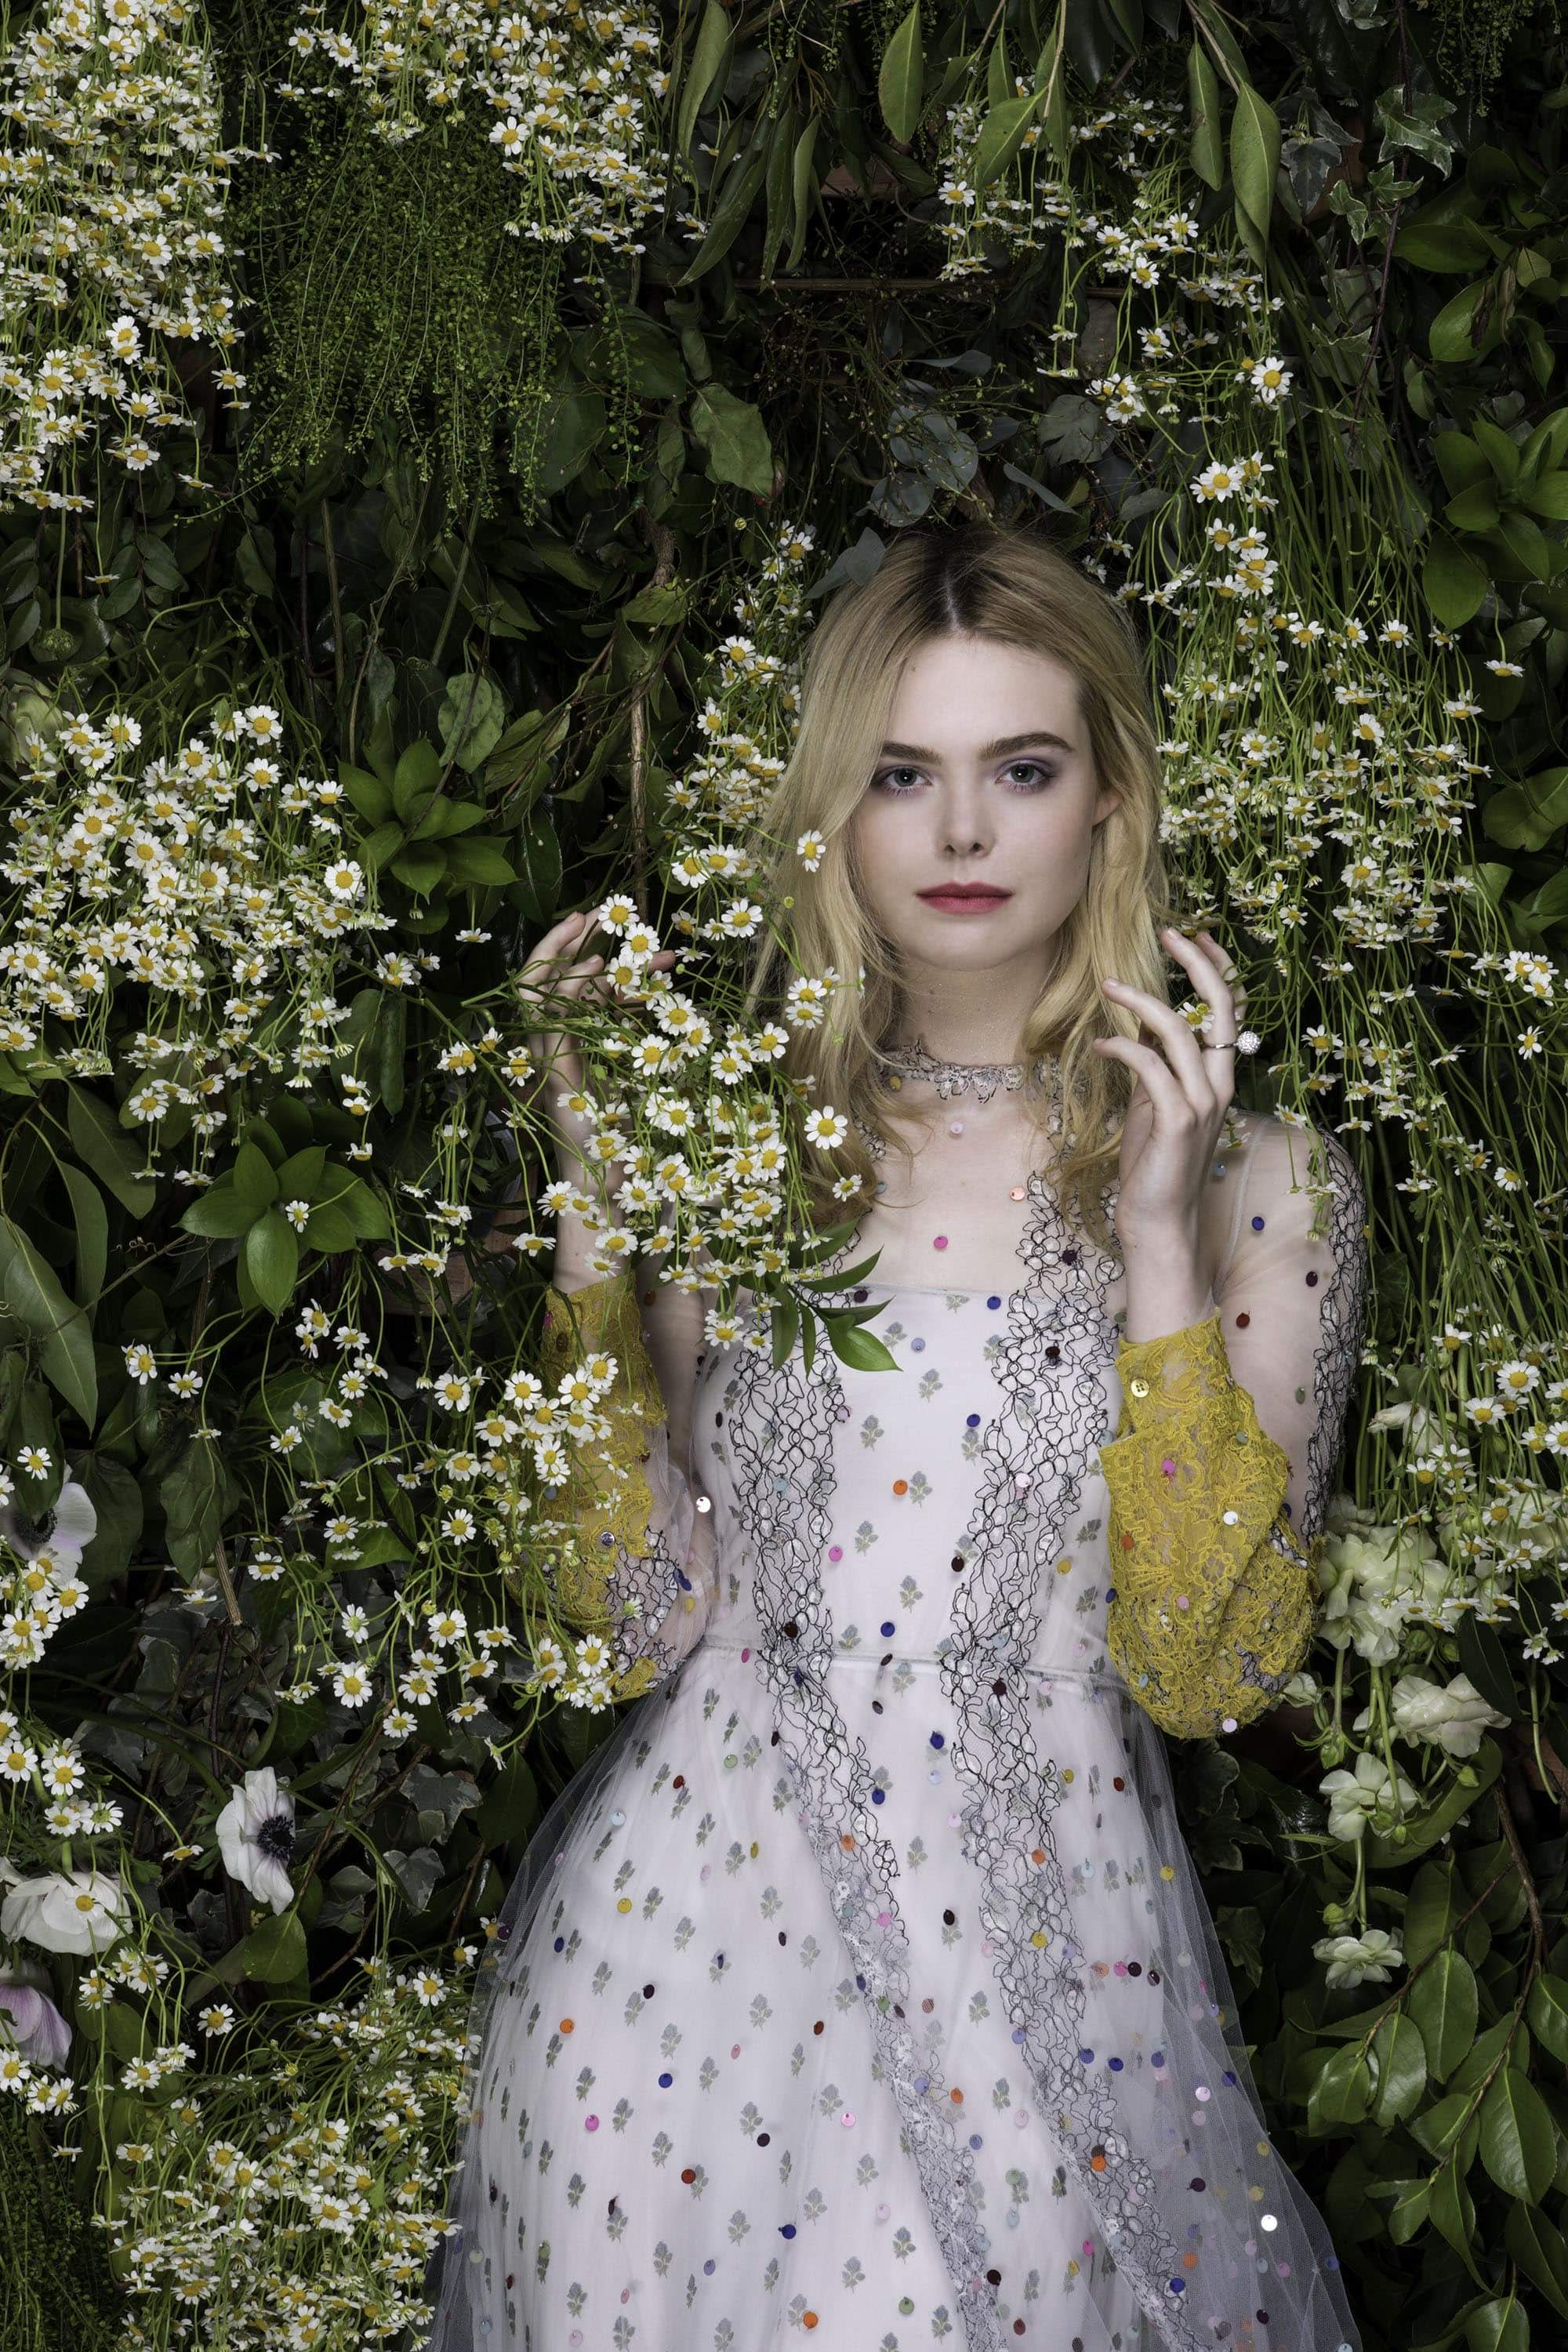 Elle Fanning appeared in the Italian version of the Vanity Fair